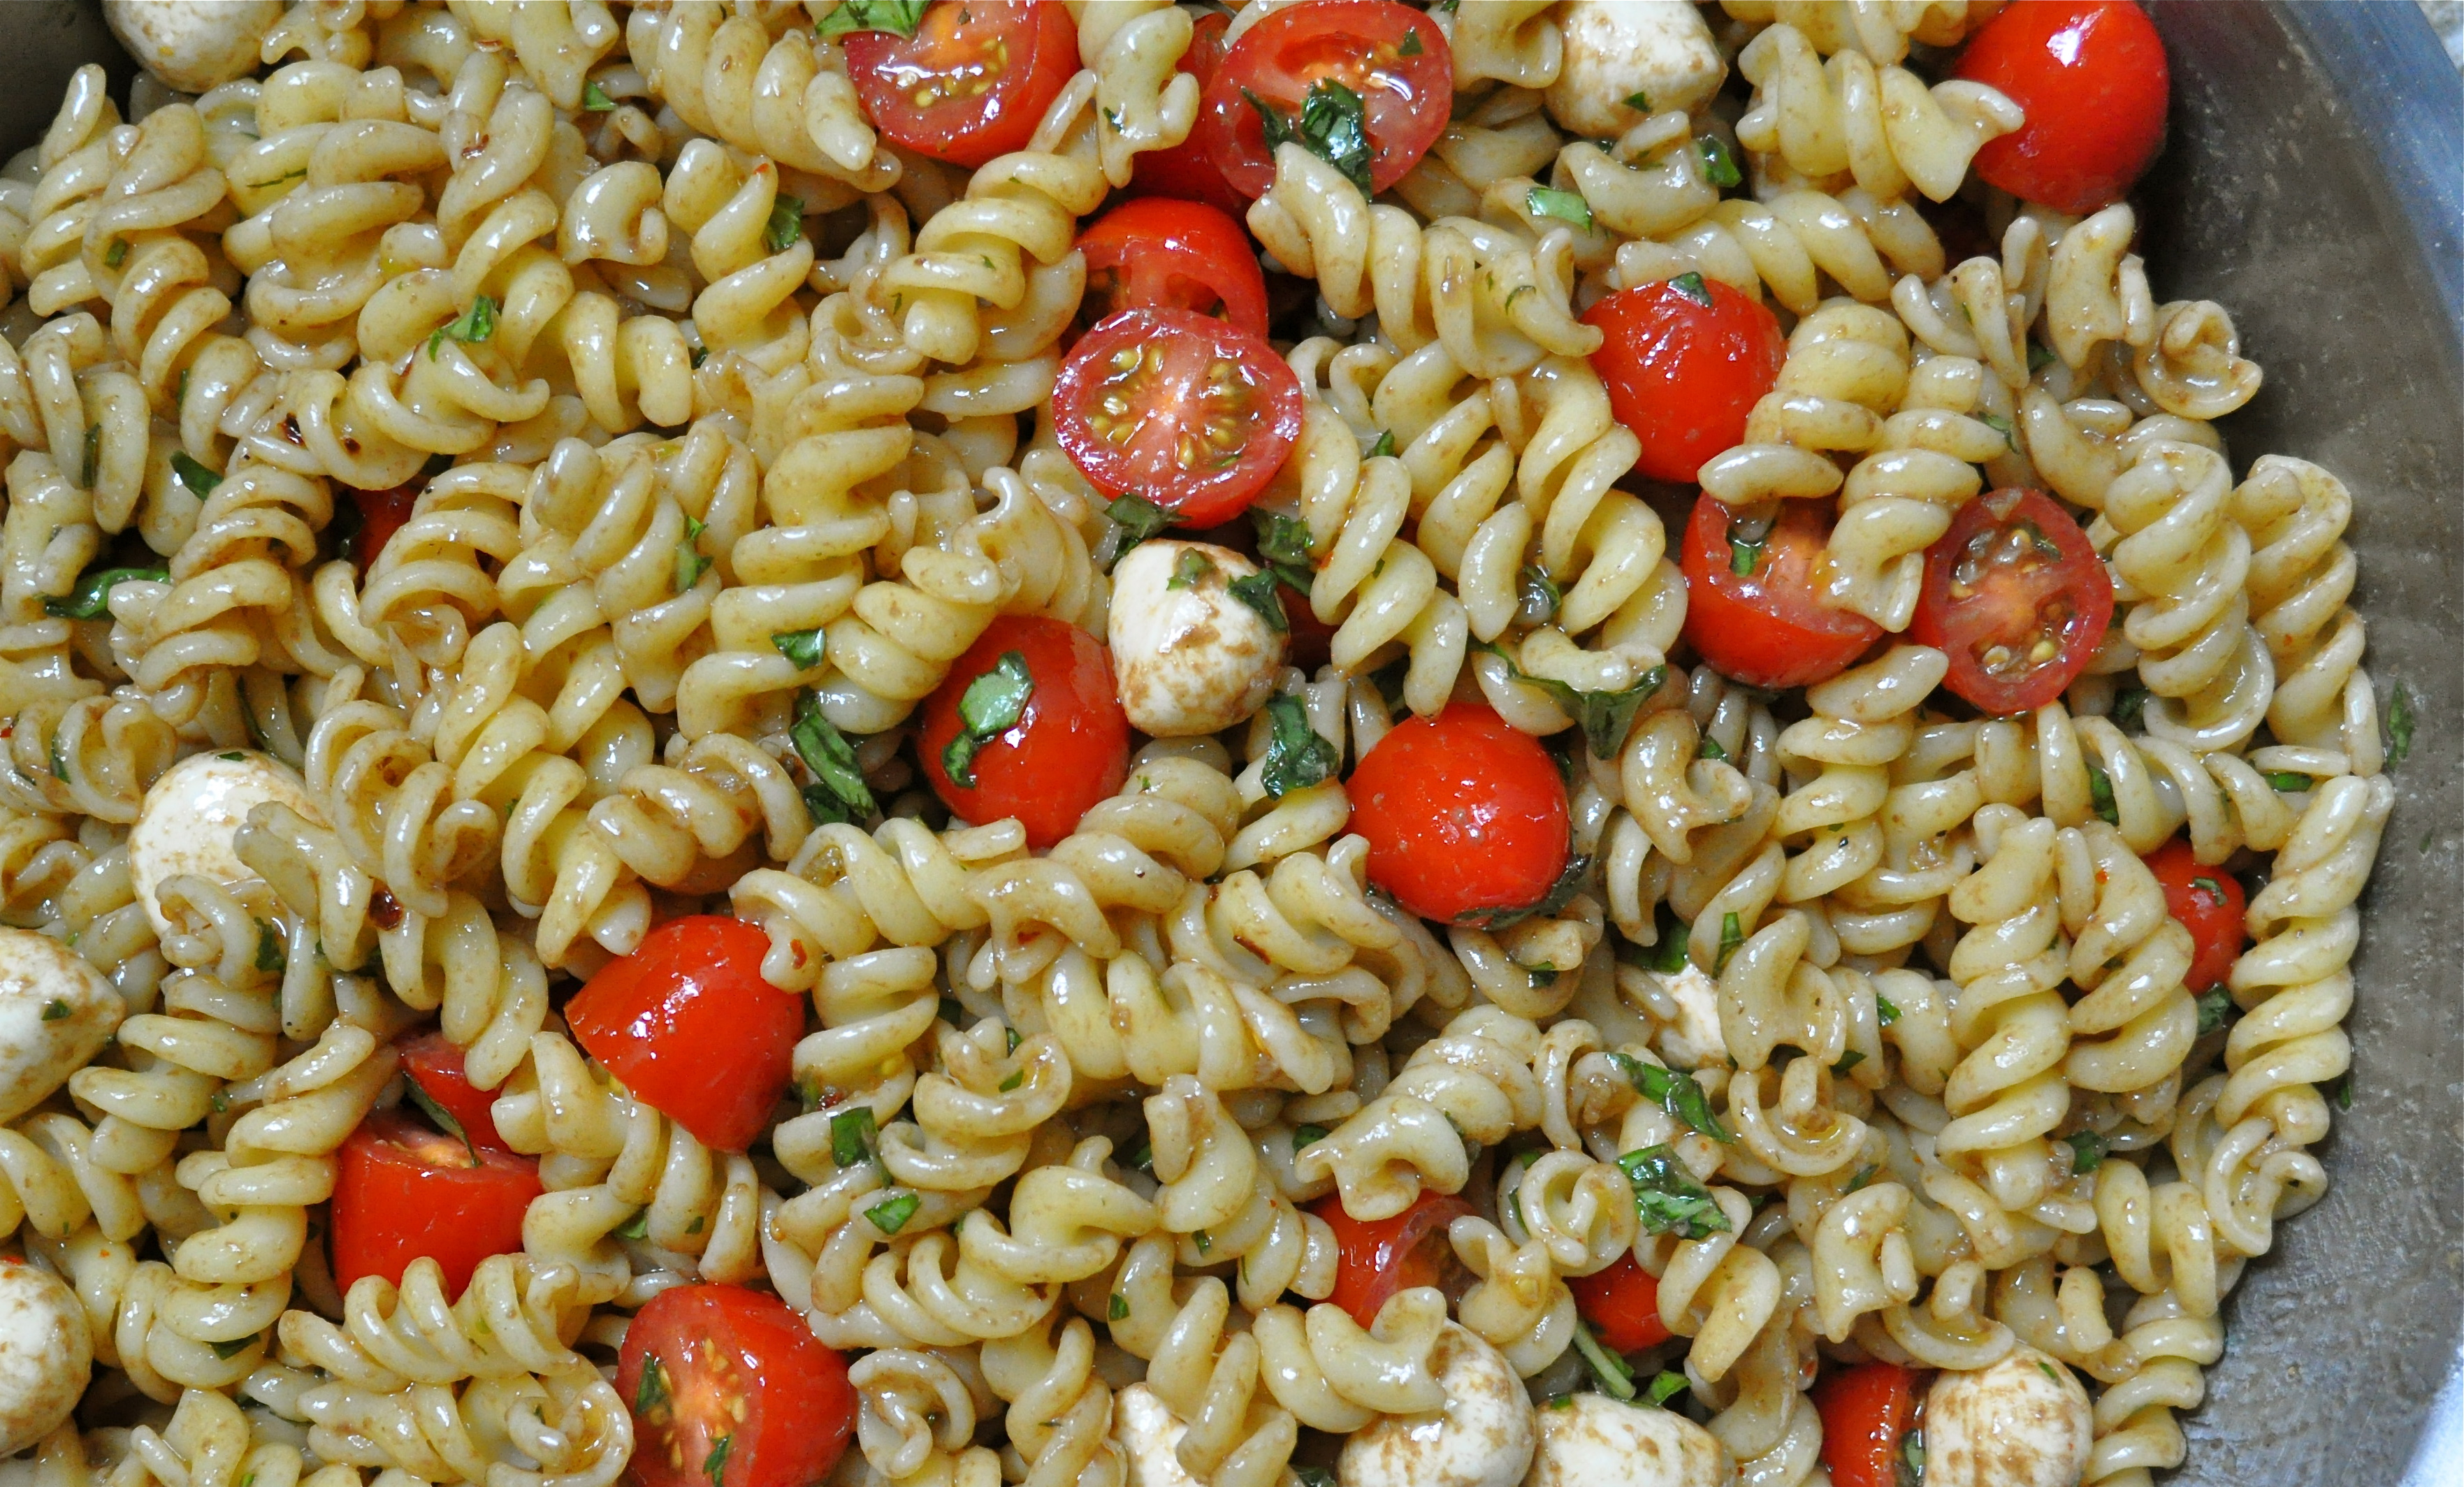 Recipes of cold pasta salad